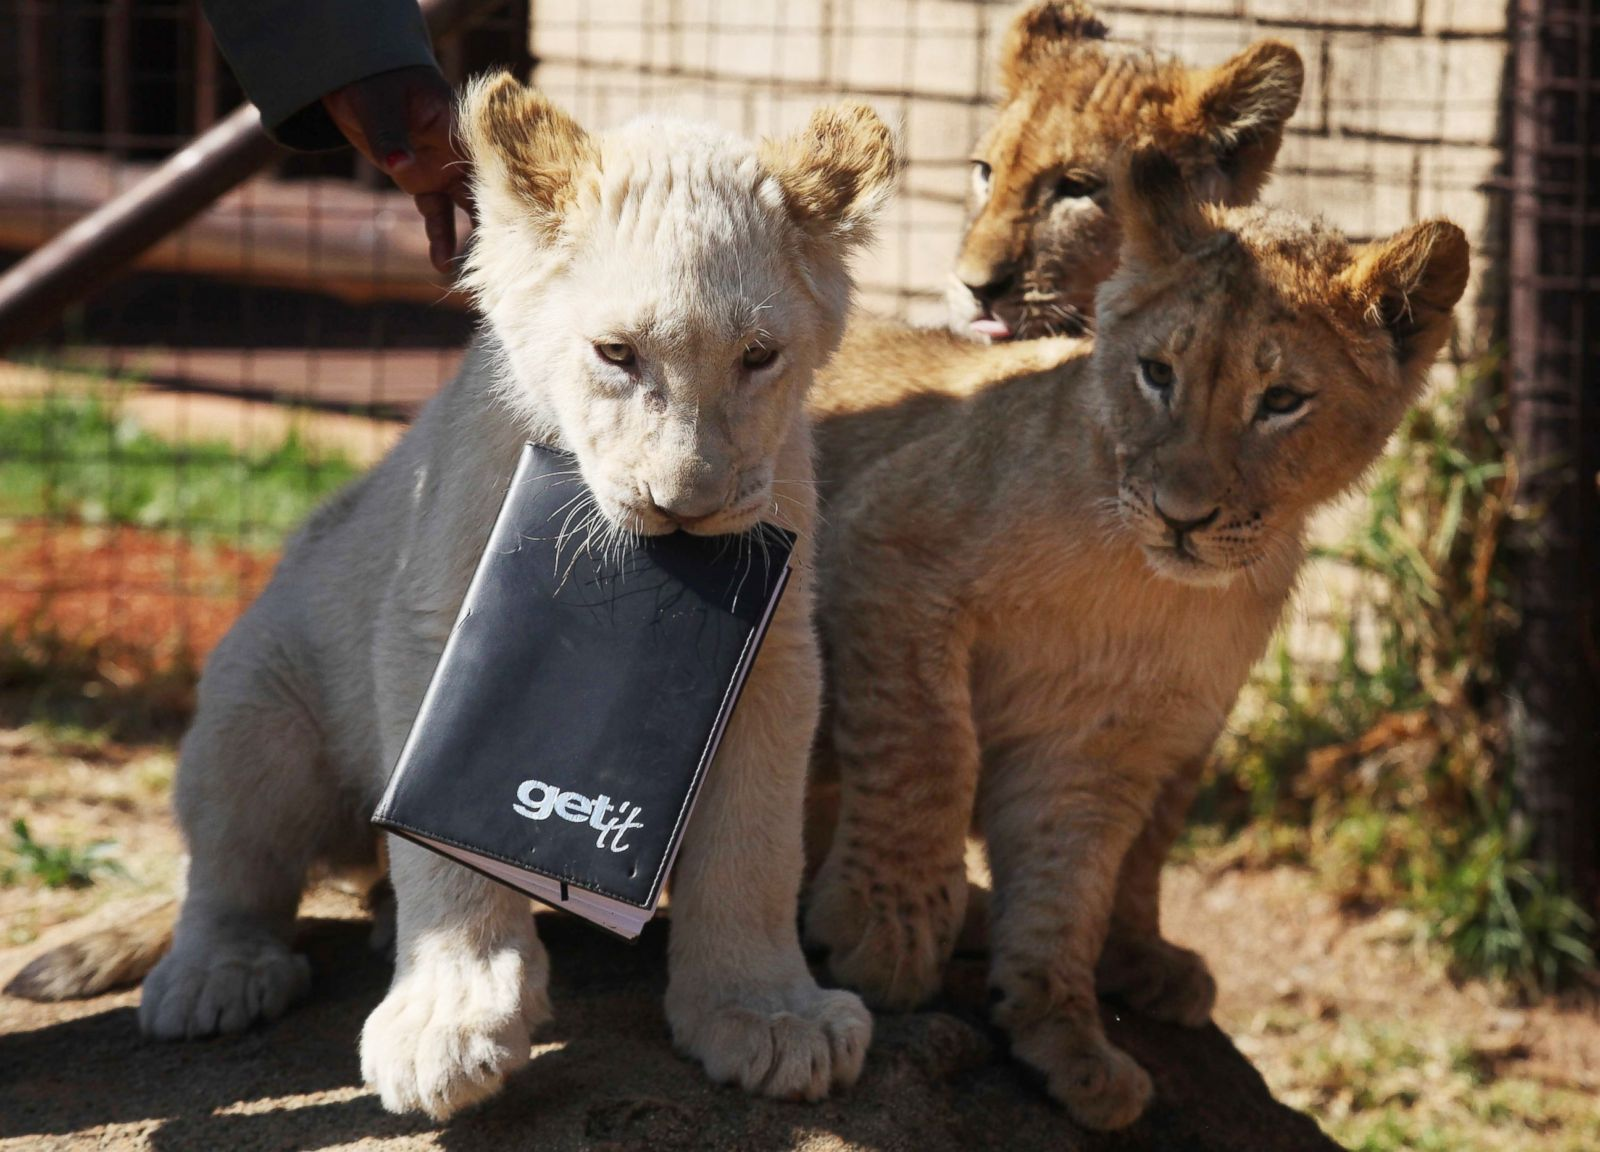 Cutest lion in the world - photo#35